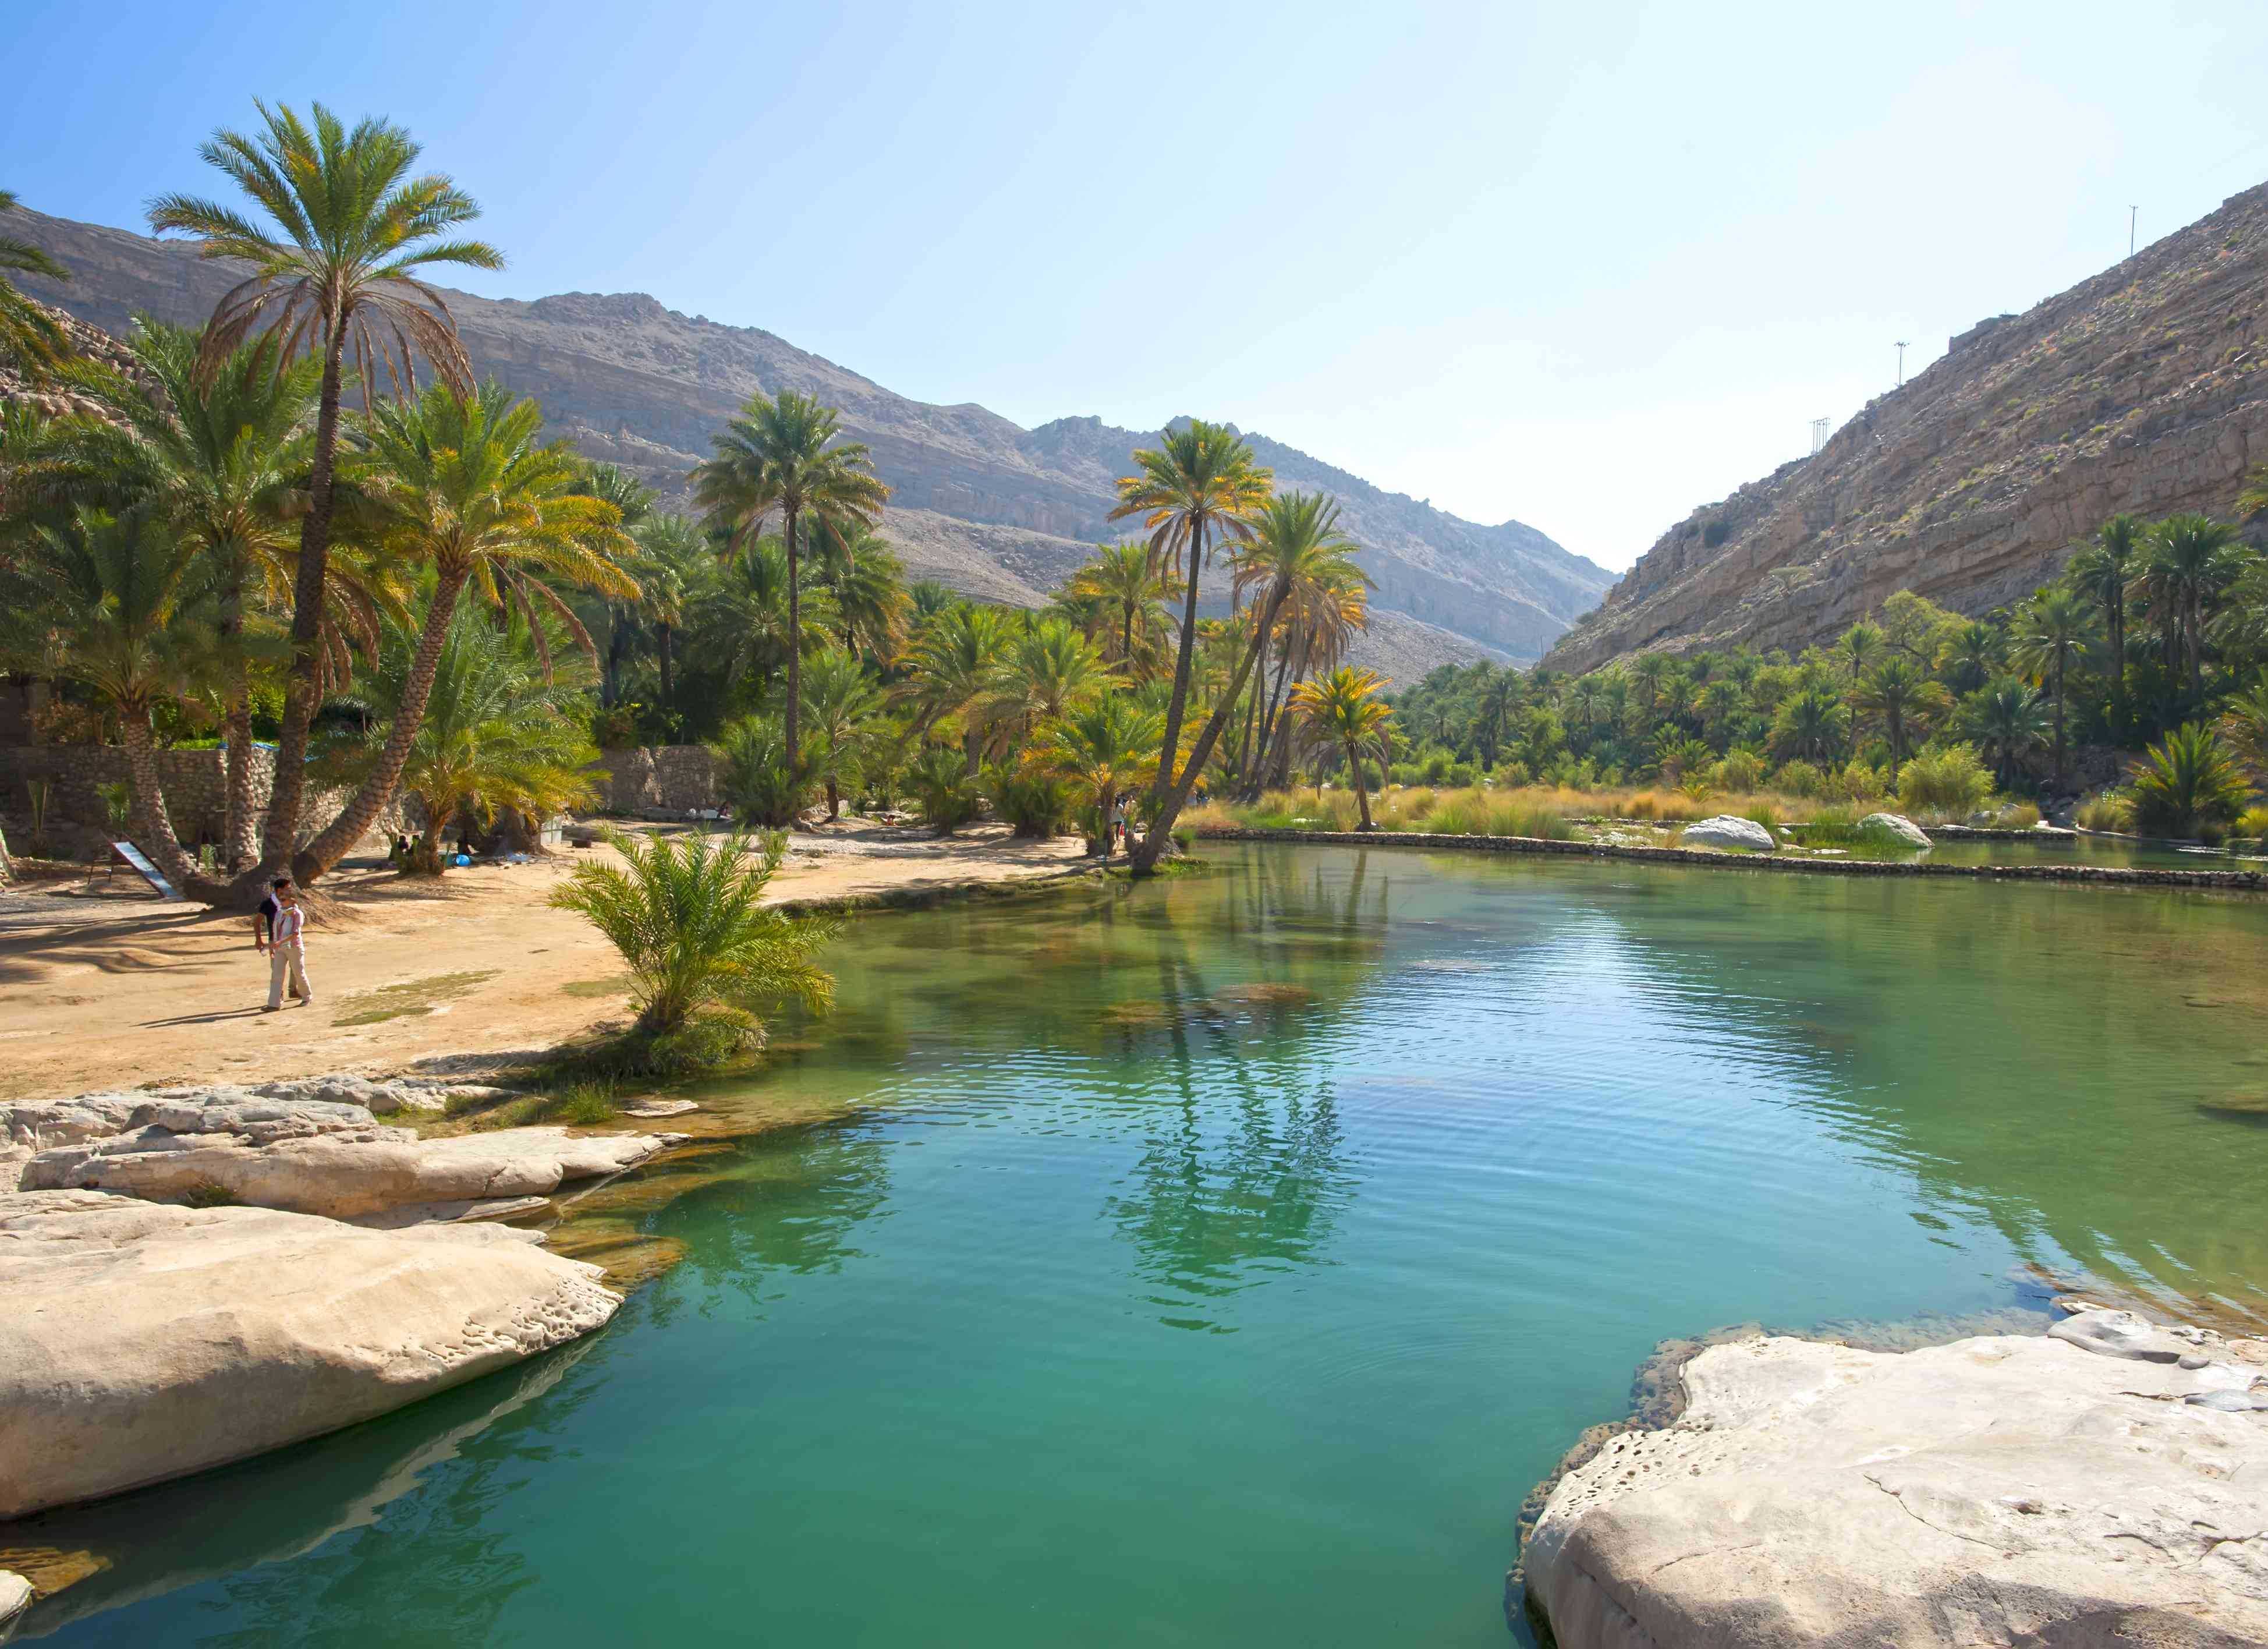 Wadi Bani Khalid oasis in Oman surrounded by lush greenery with mountains in the background